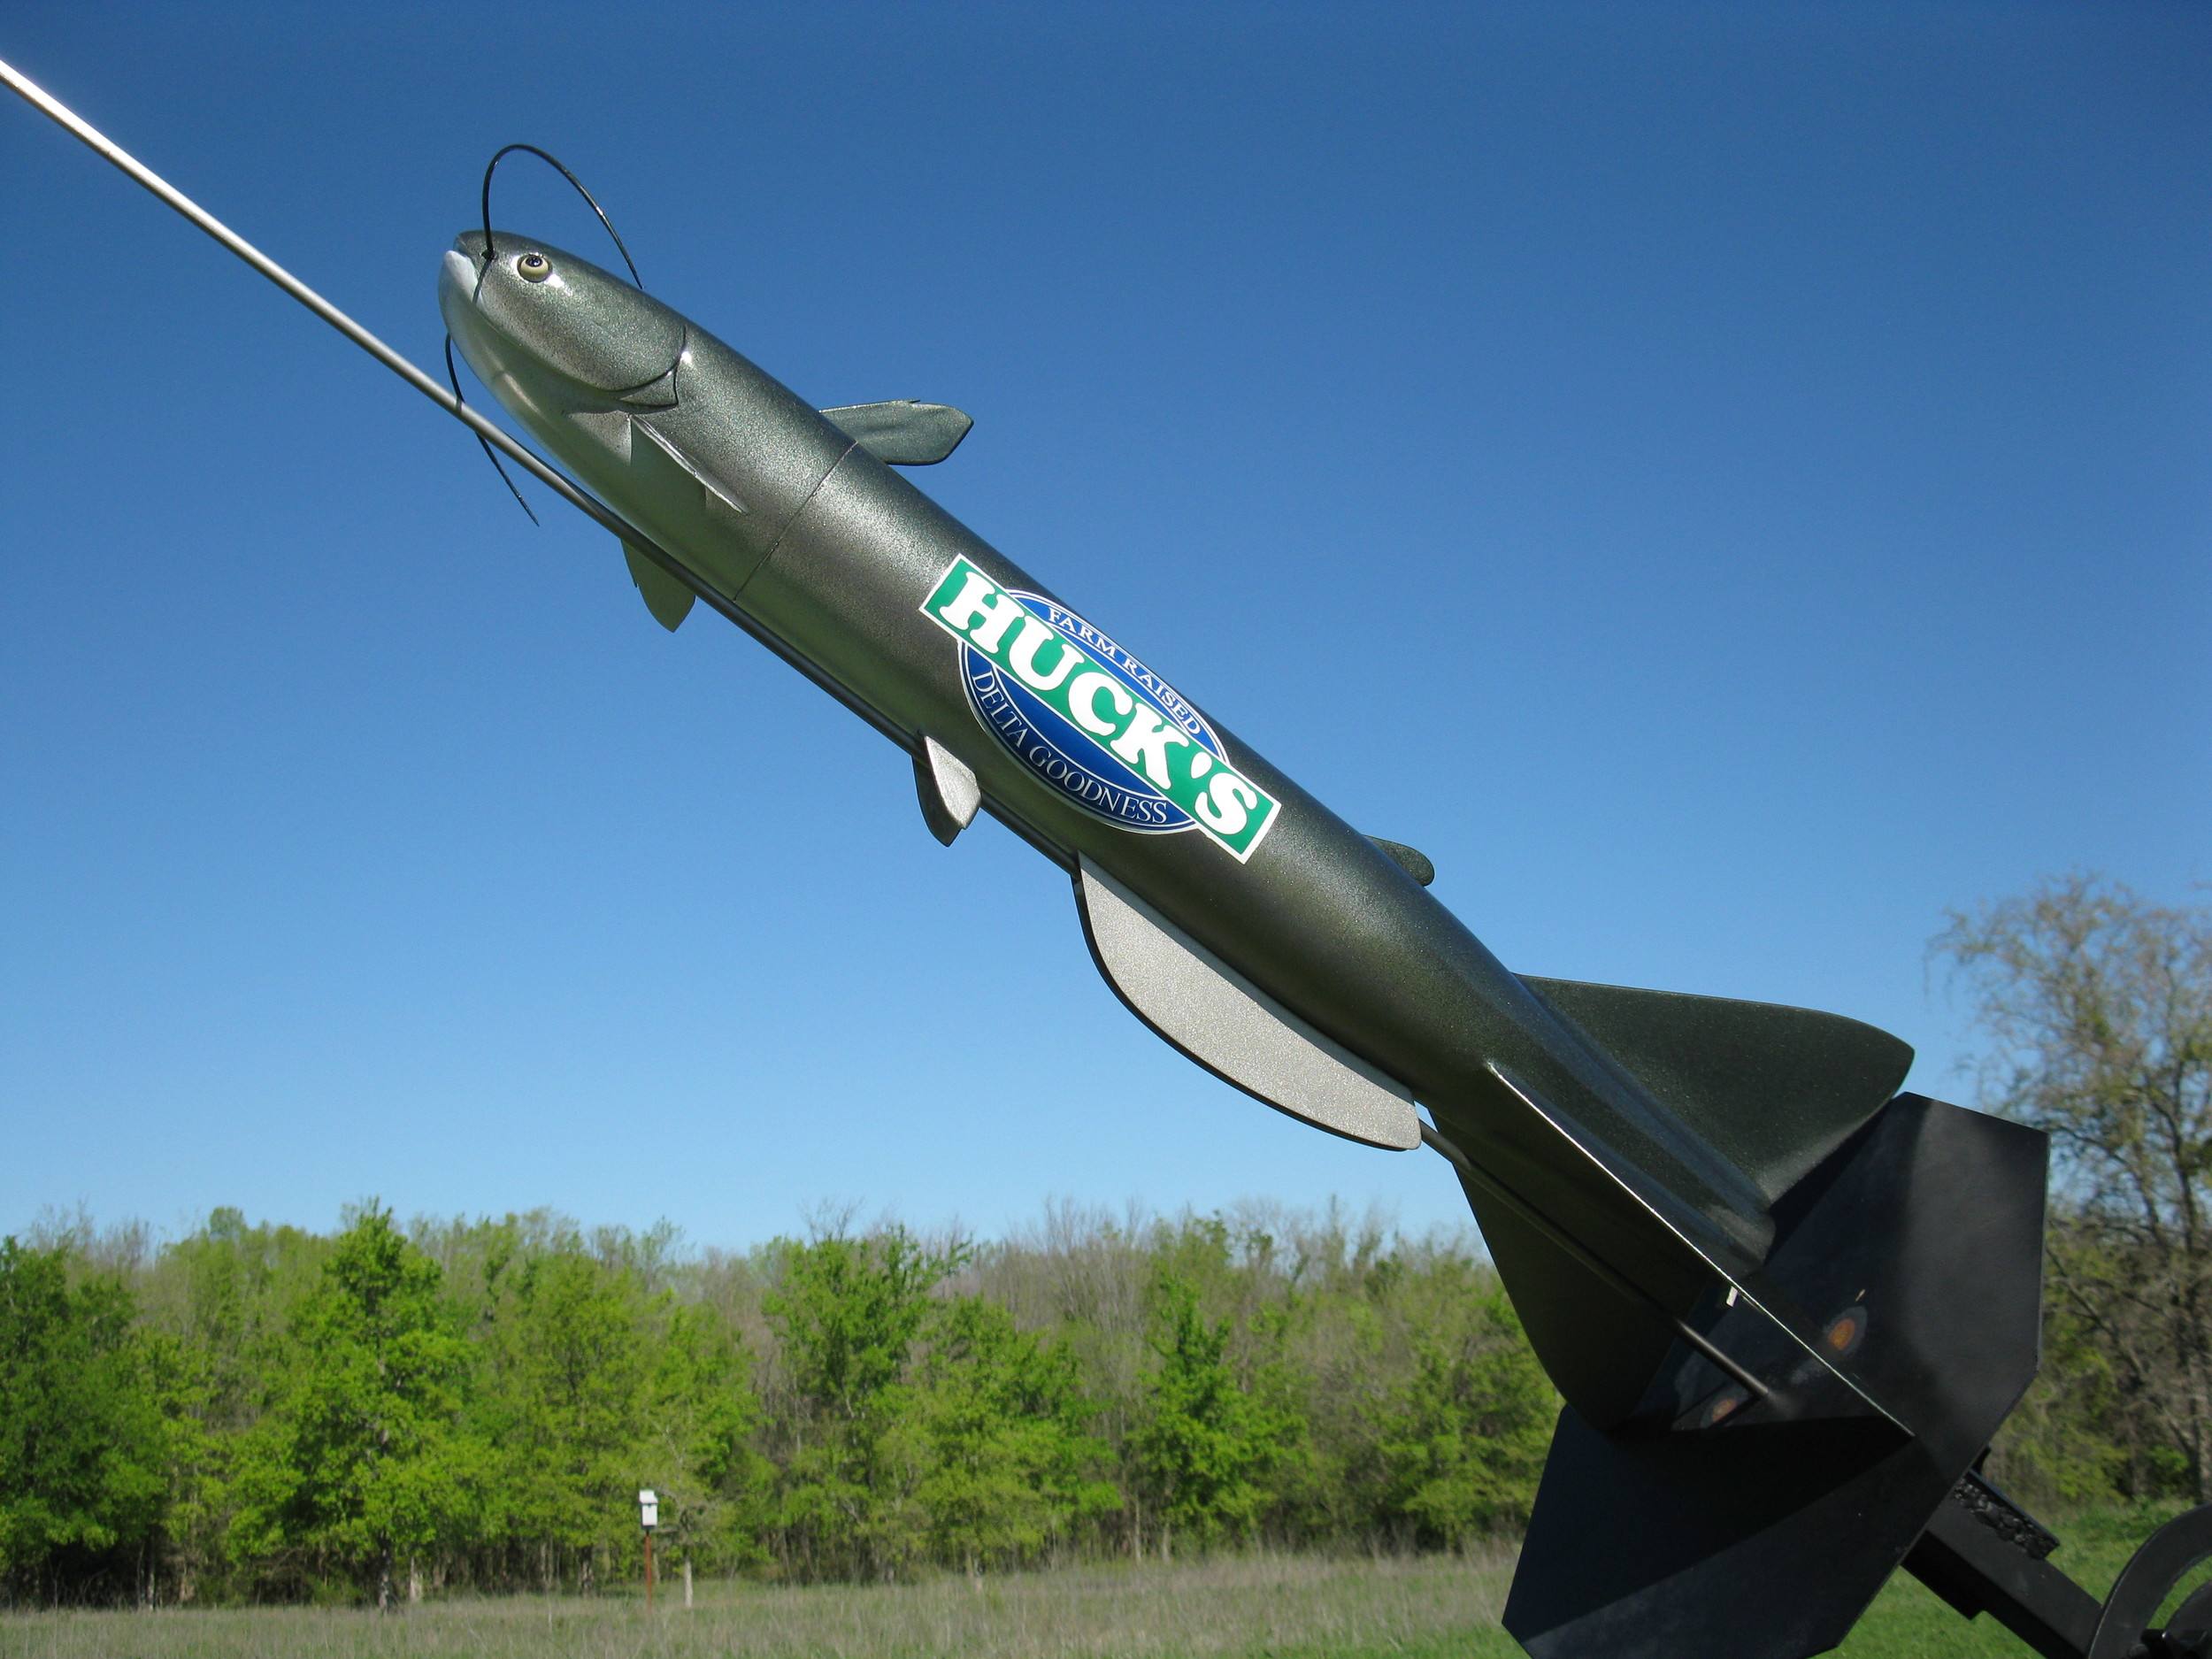 Custom Built Rockets for Advertising